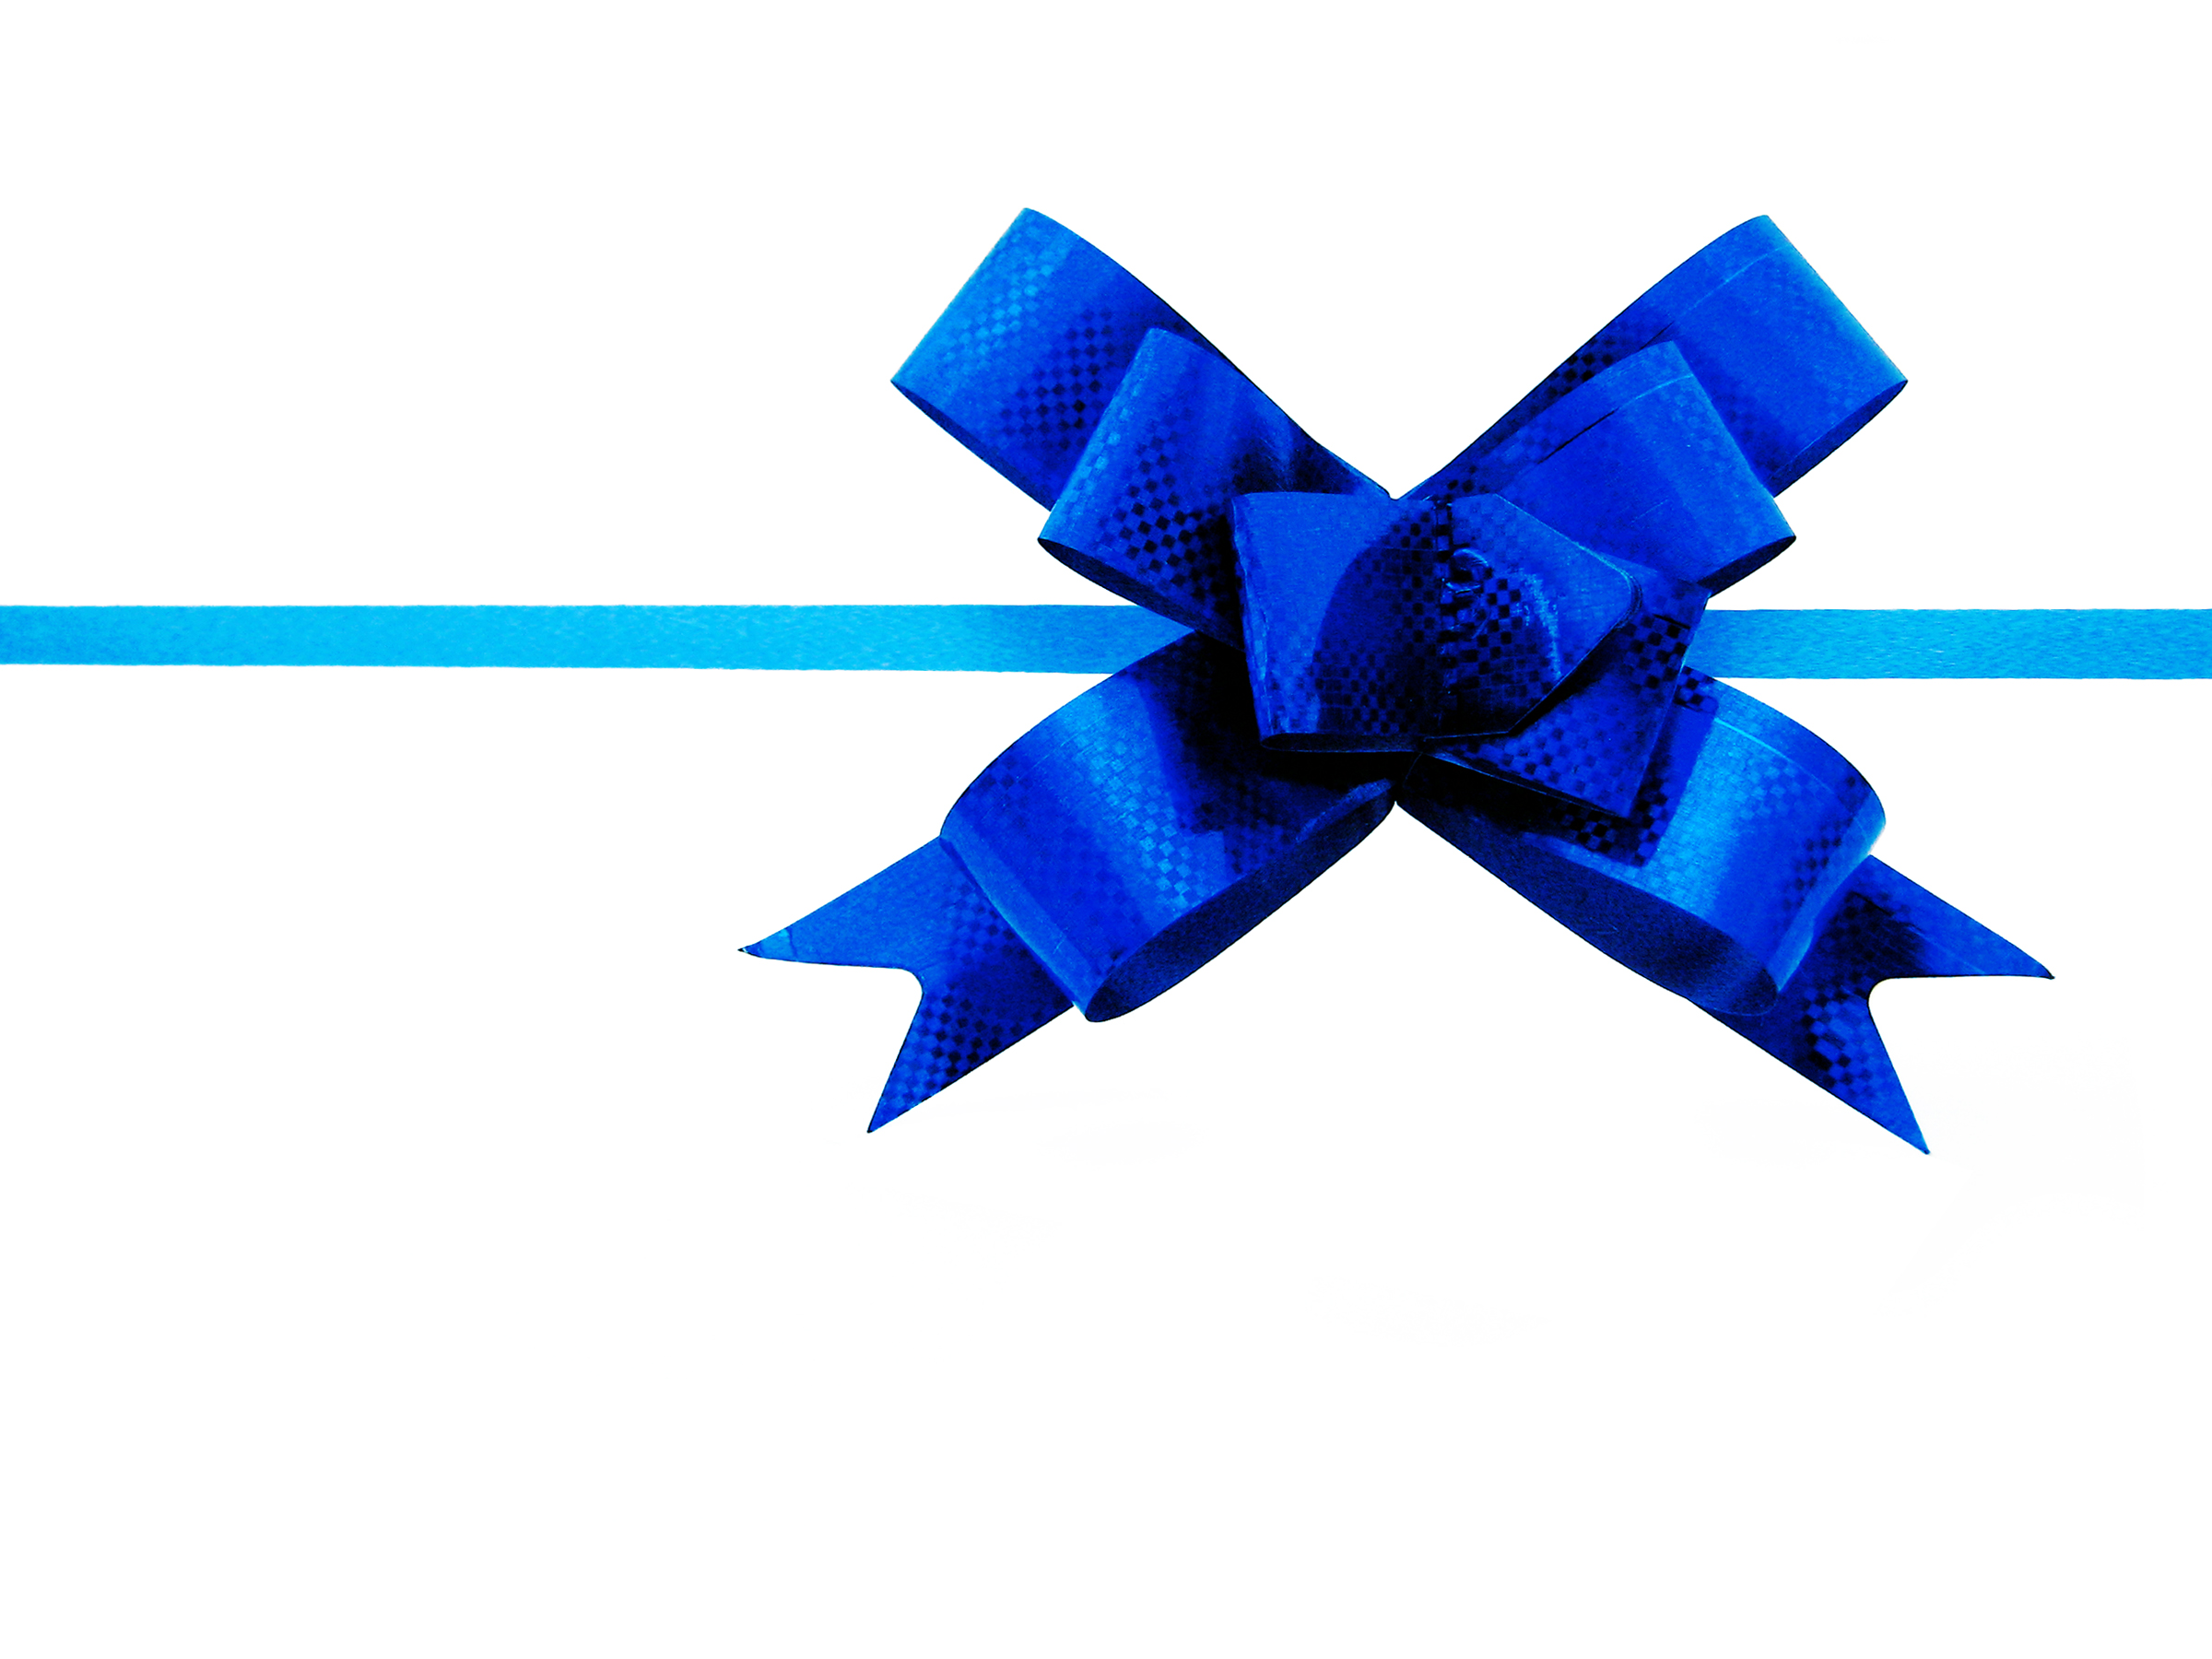 blue bow, Birthday, Xmas, Wrappingpaper, Wrapping, HQ Photo